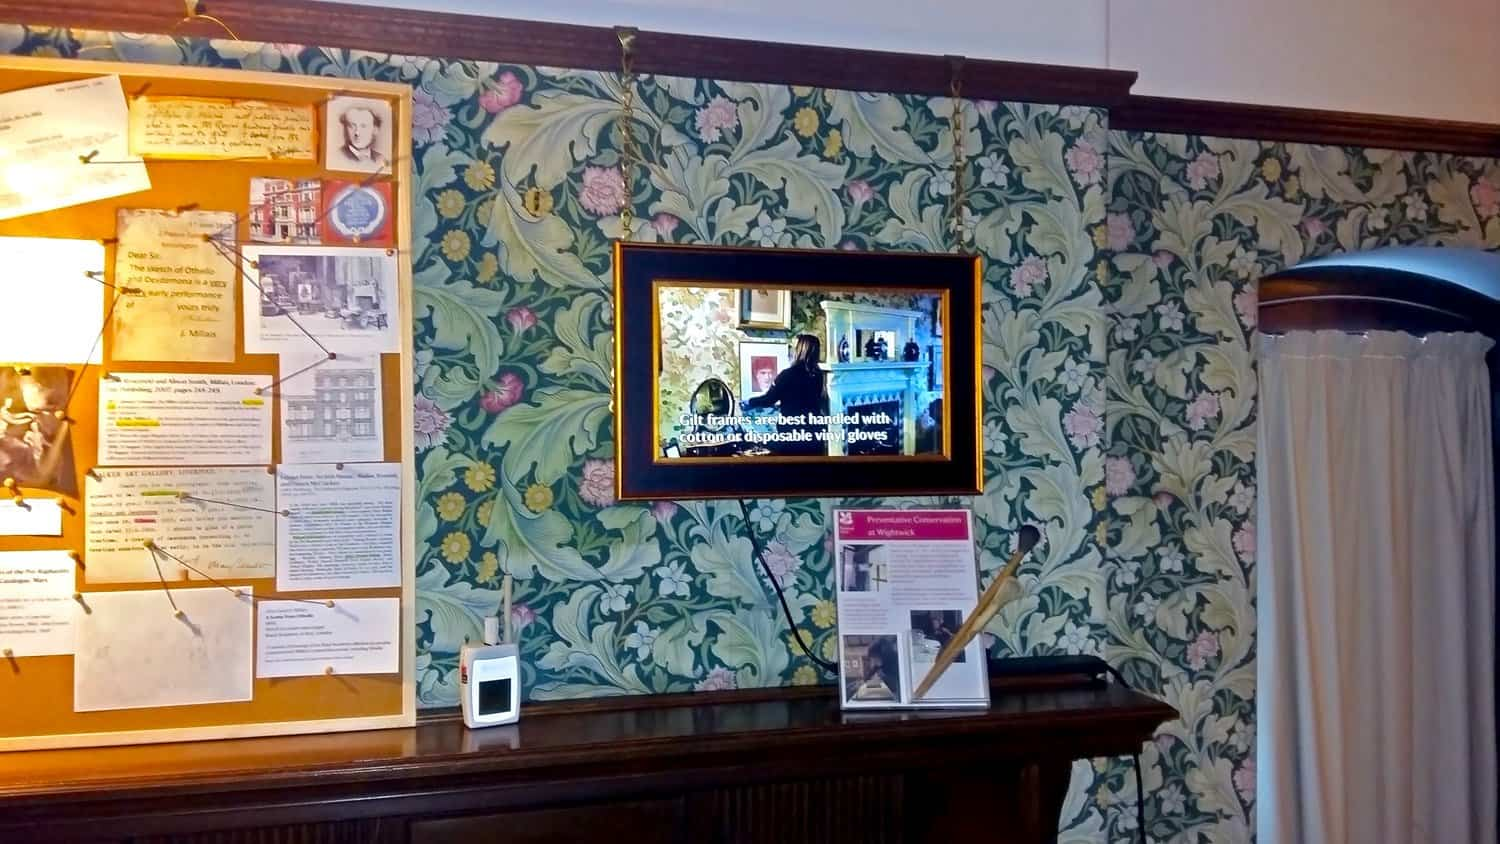 22 Inch All-In-One Touchscreen at Wightwick Manor and Gardens